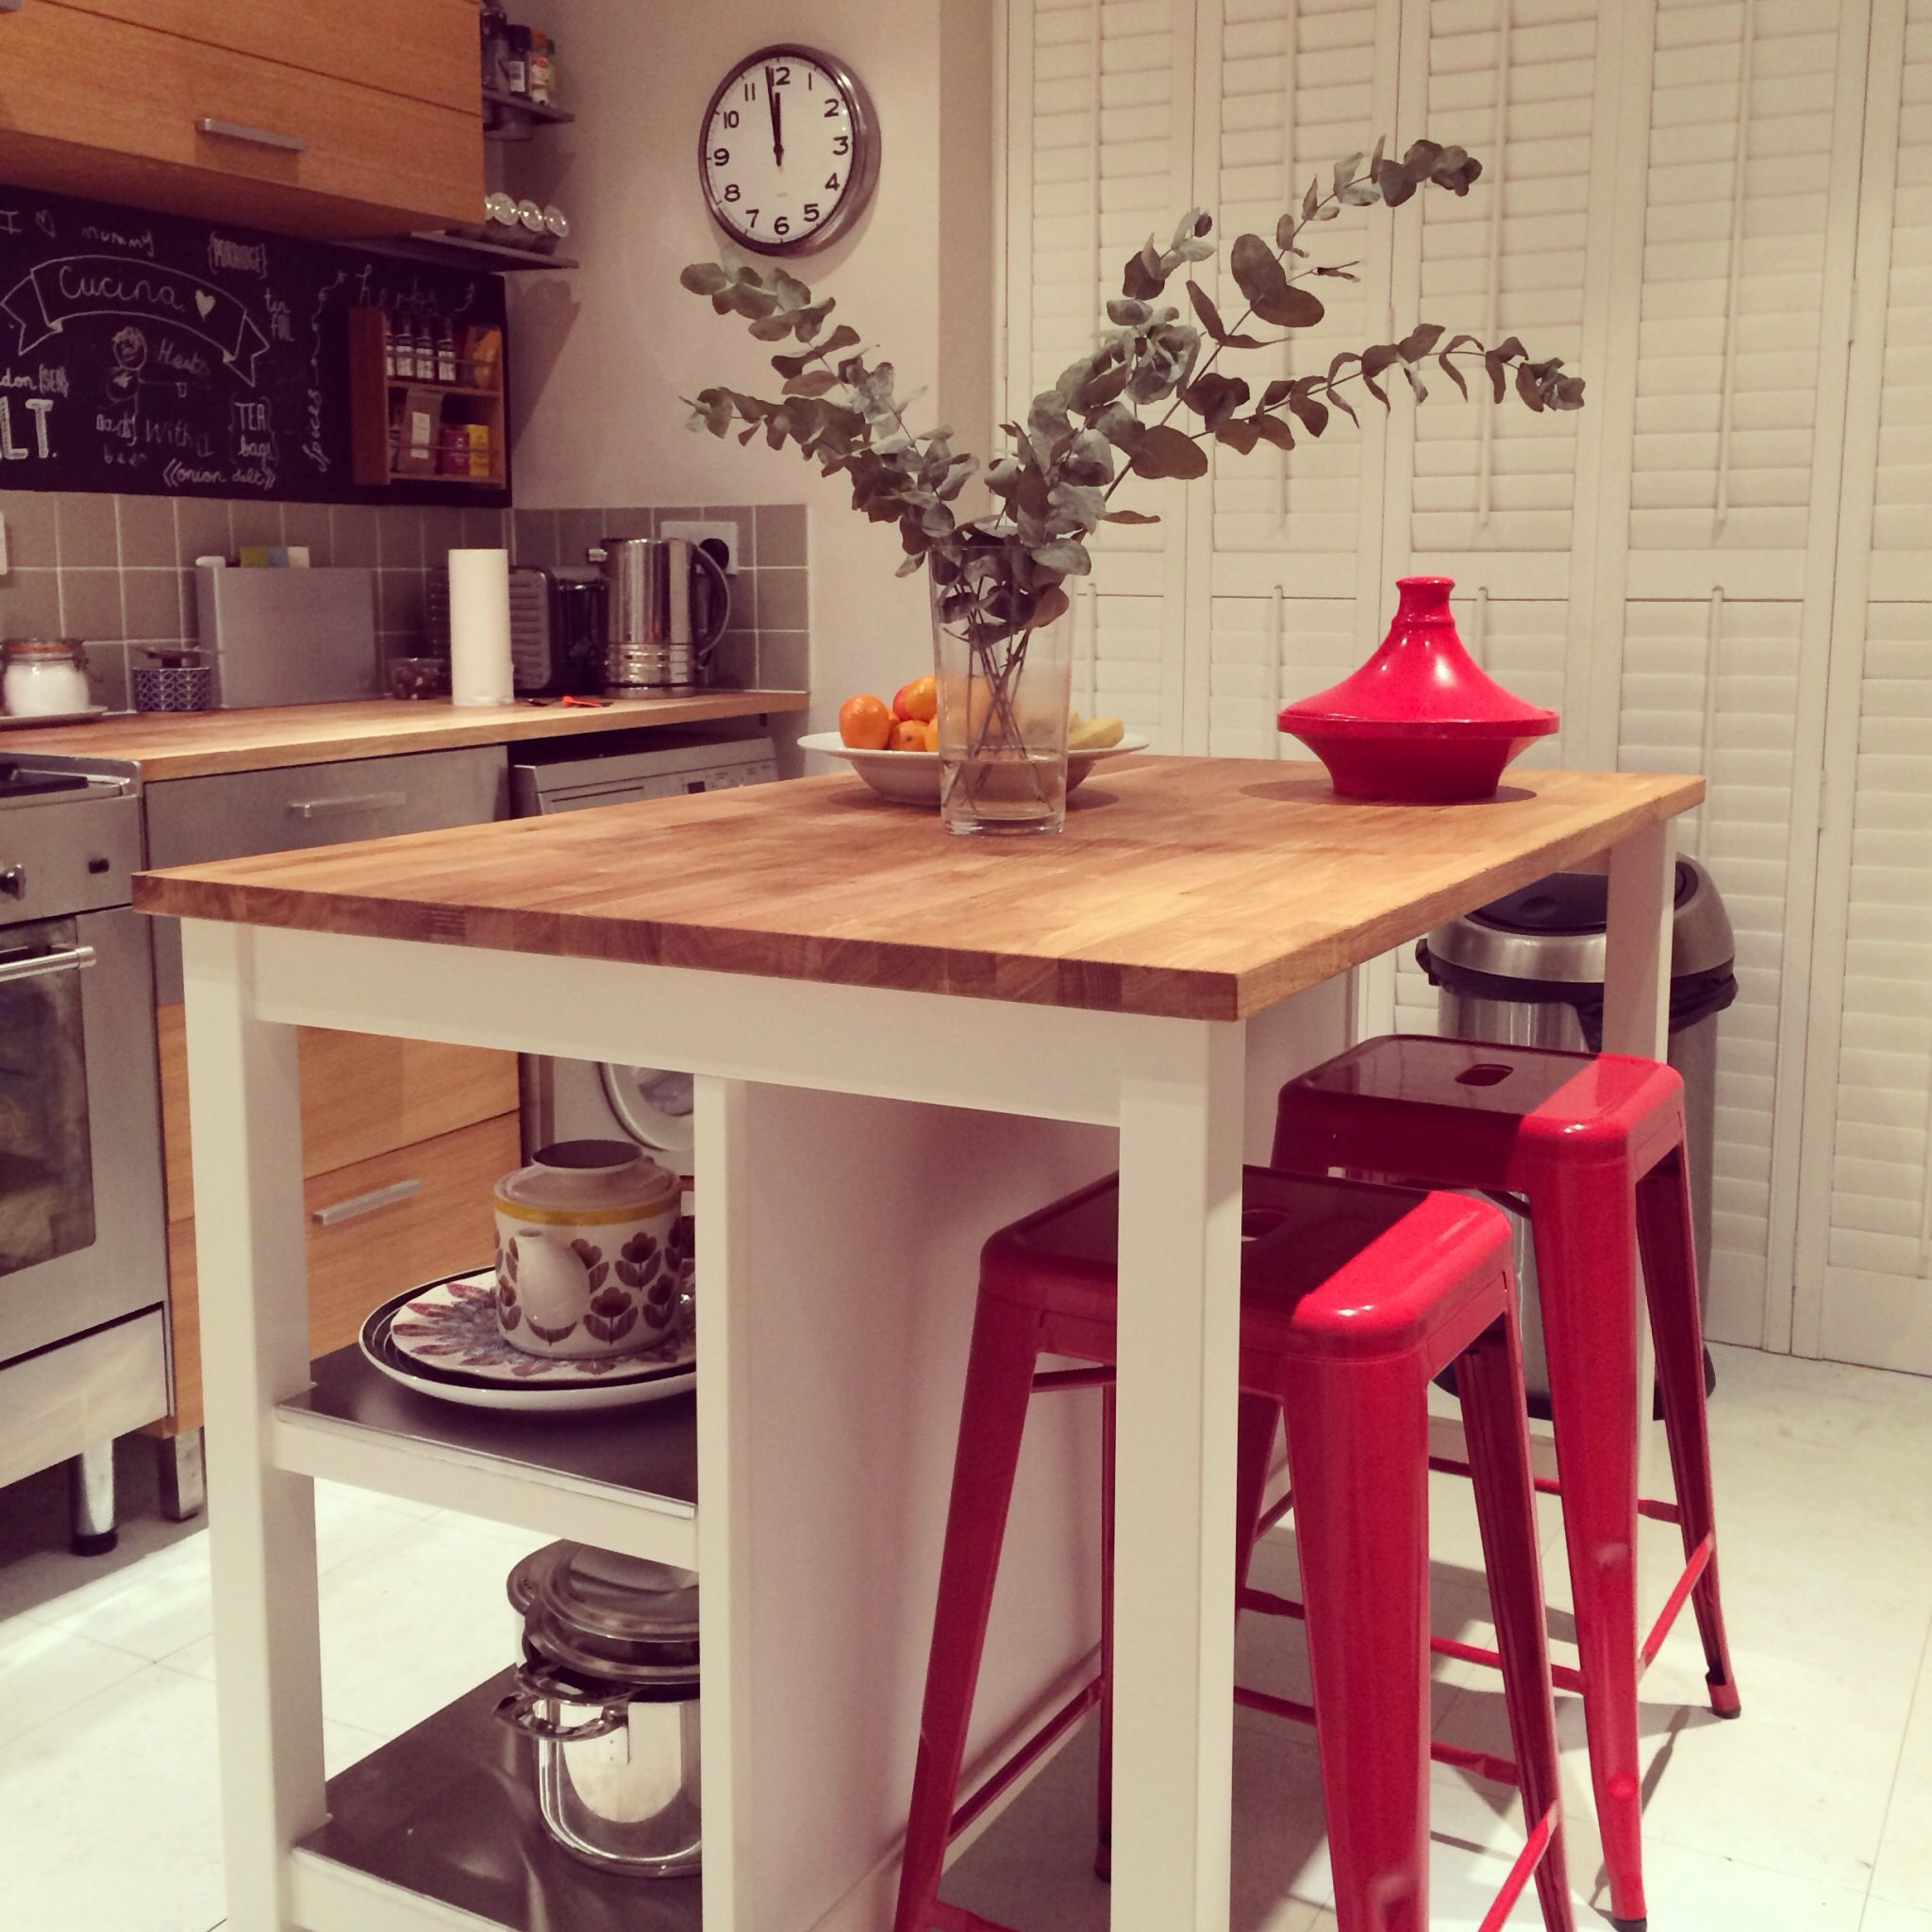 Kitchen Island Table Ikea: Stenstorp Island From Ikea With Red Tolix Style Chairs. Just Needs Pendants...